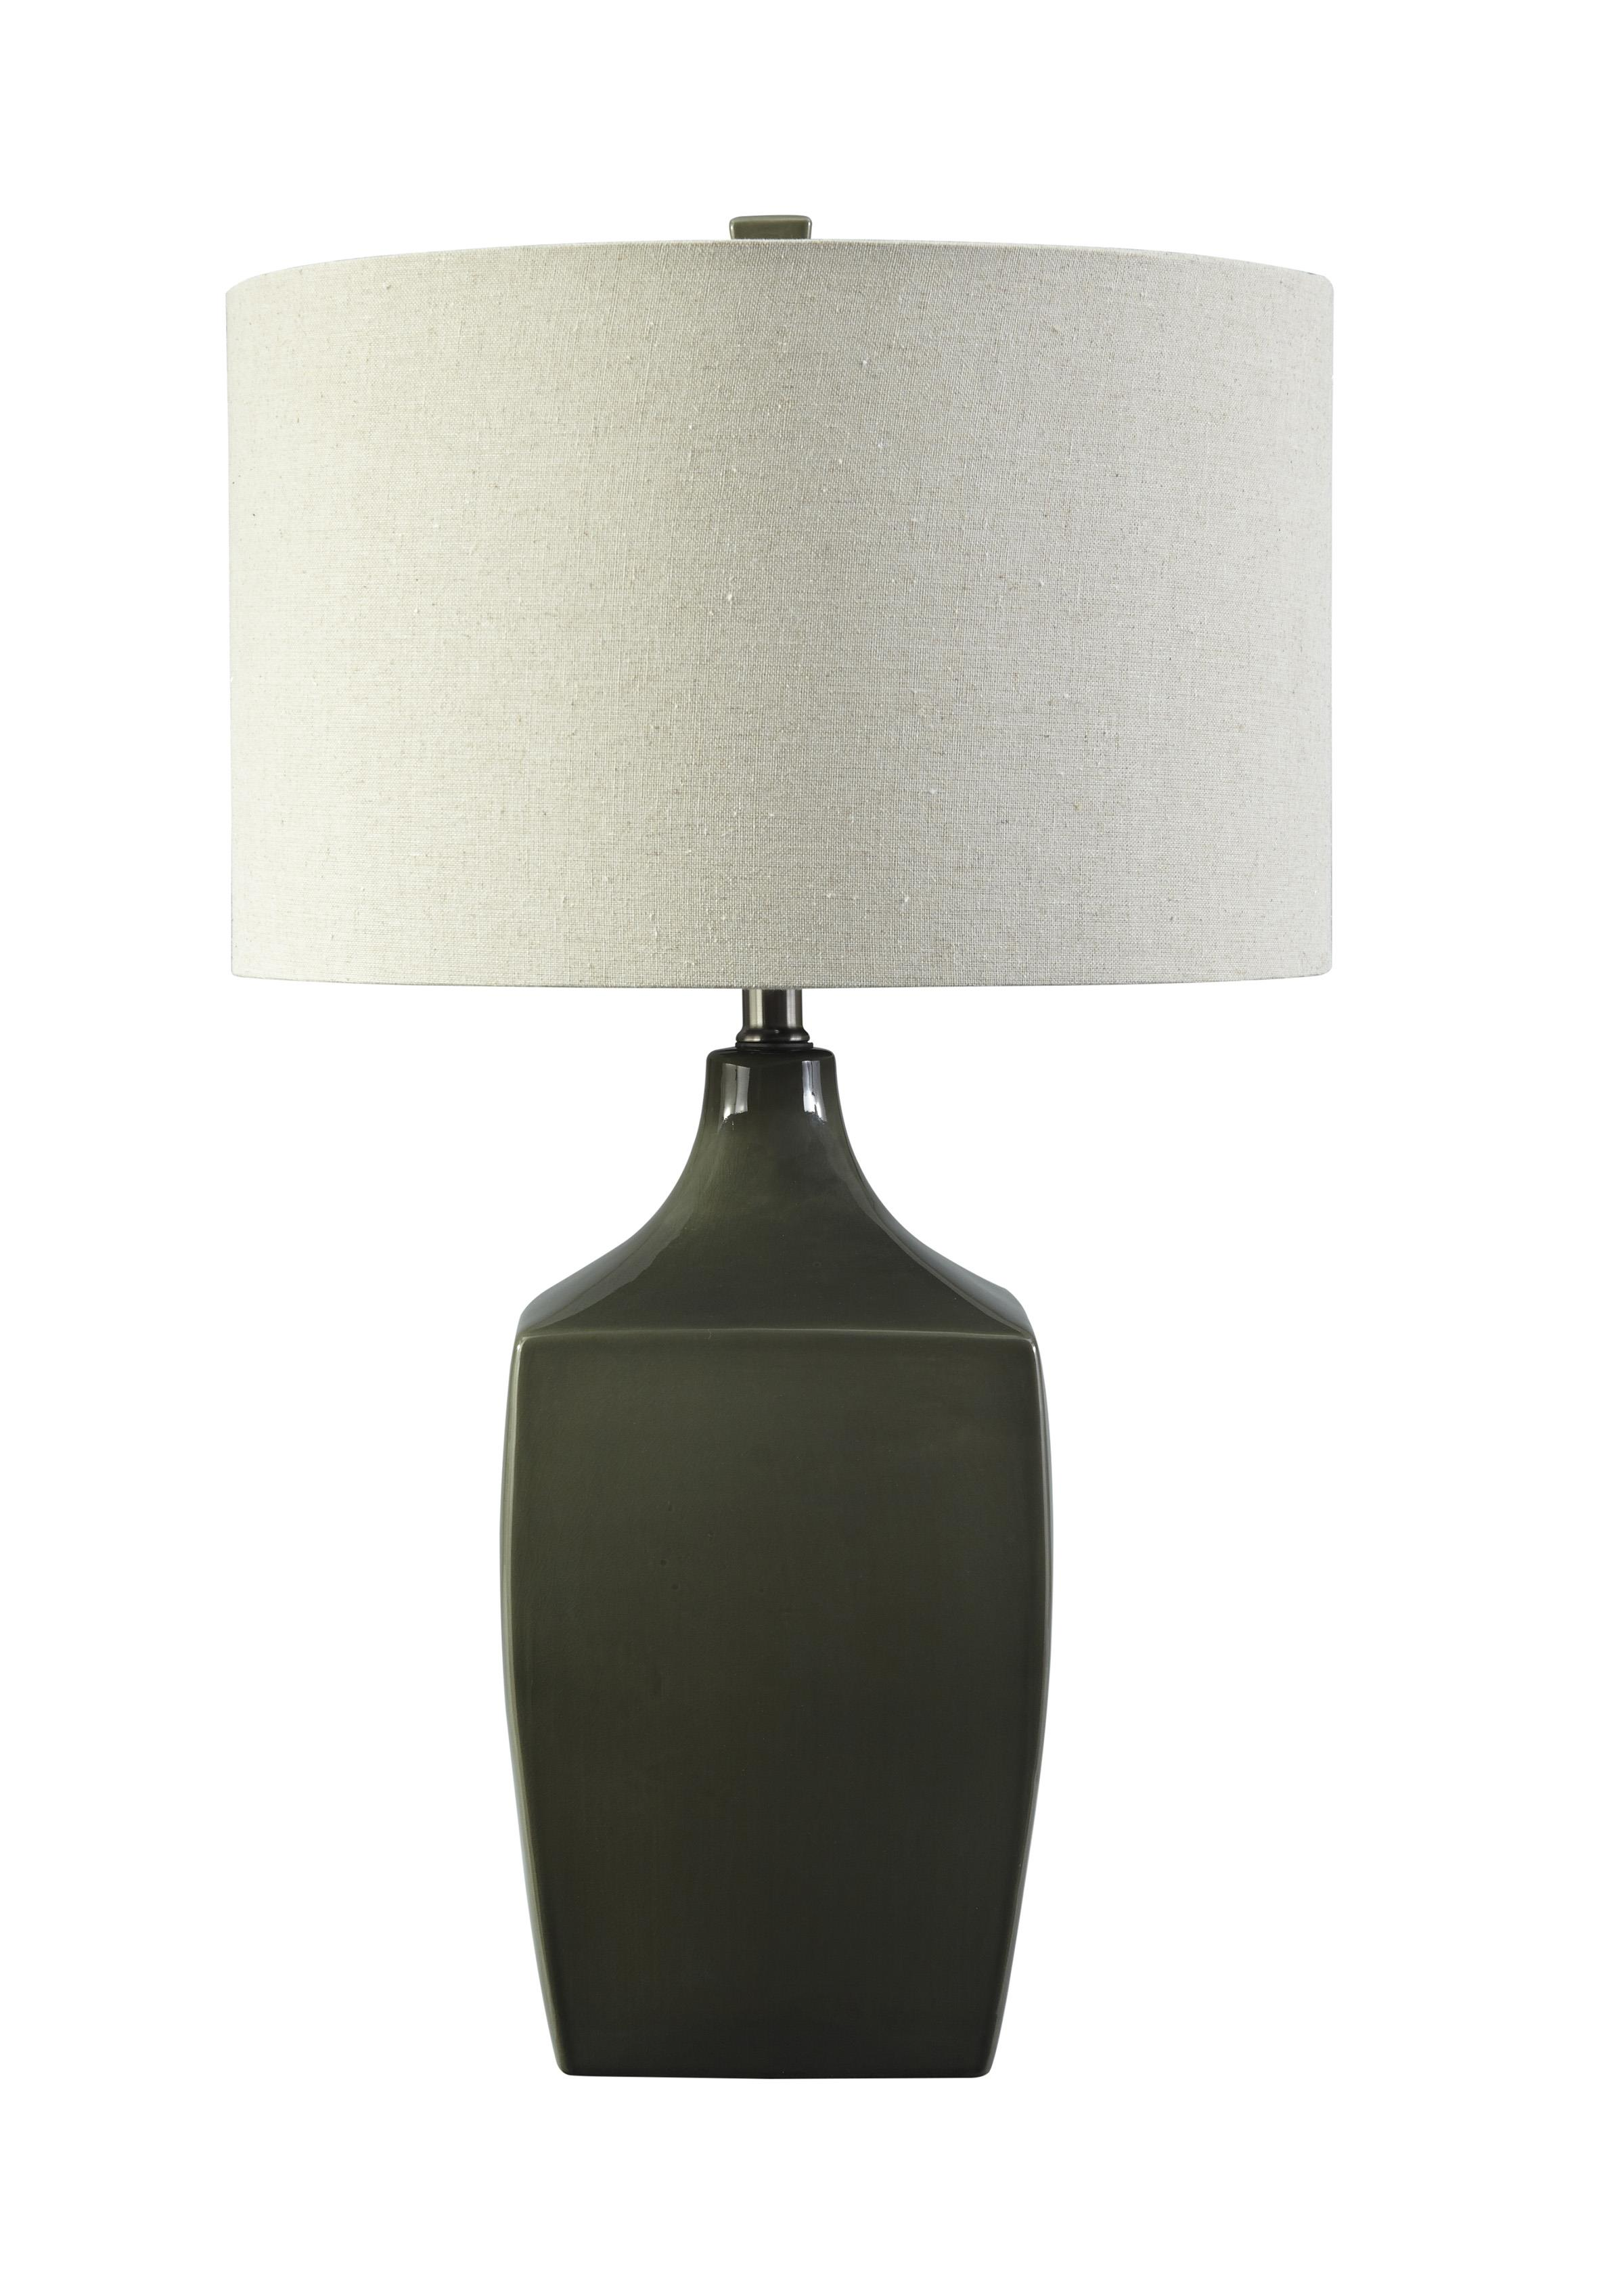 Signature Design by Ashley Lamps - Contemporary Sheaon - Dark Green Ceramic Table Lamp - Item Number: L100334